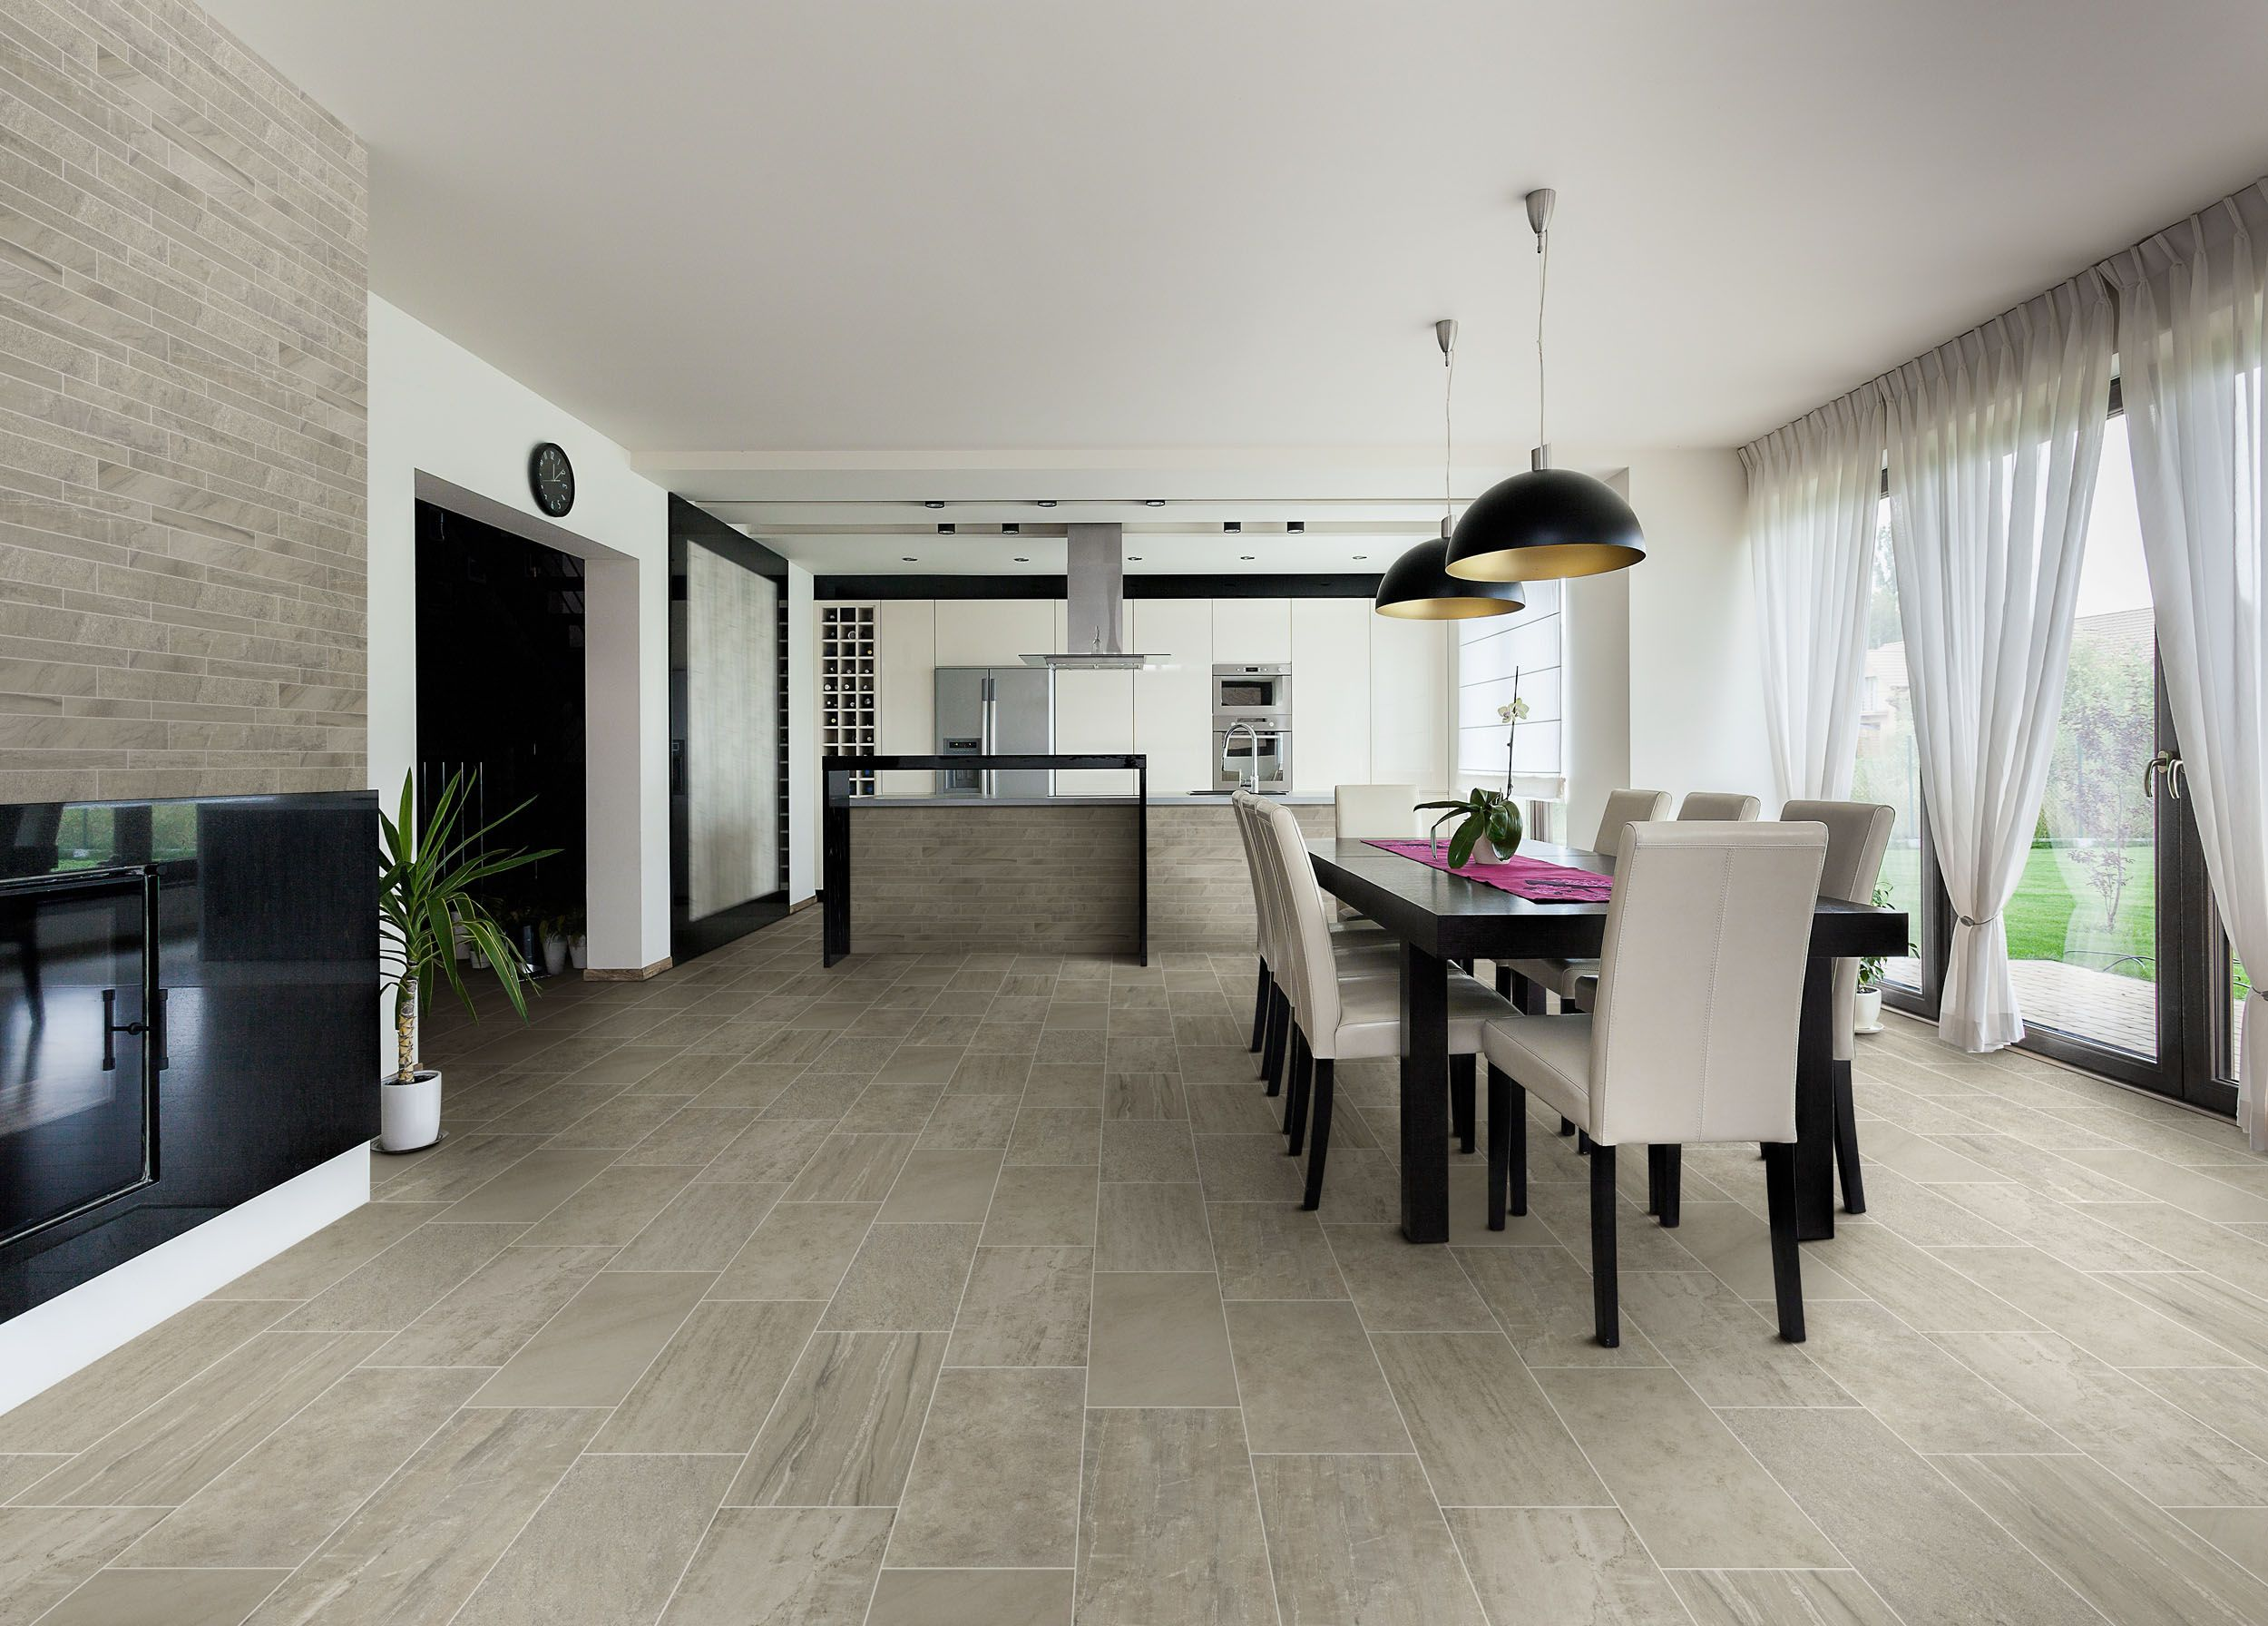 Porcelain Tile With Mixed Look of Wood, Stone and Concrete